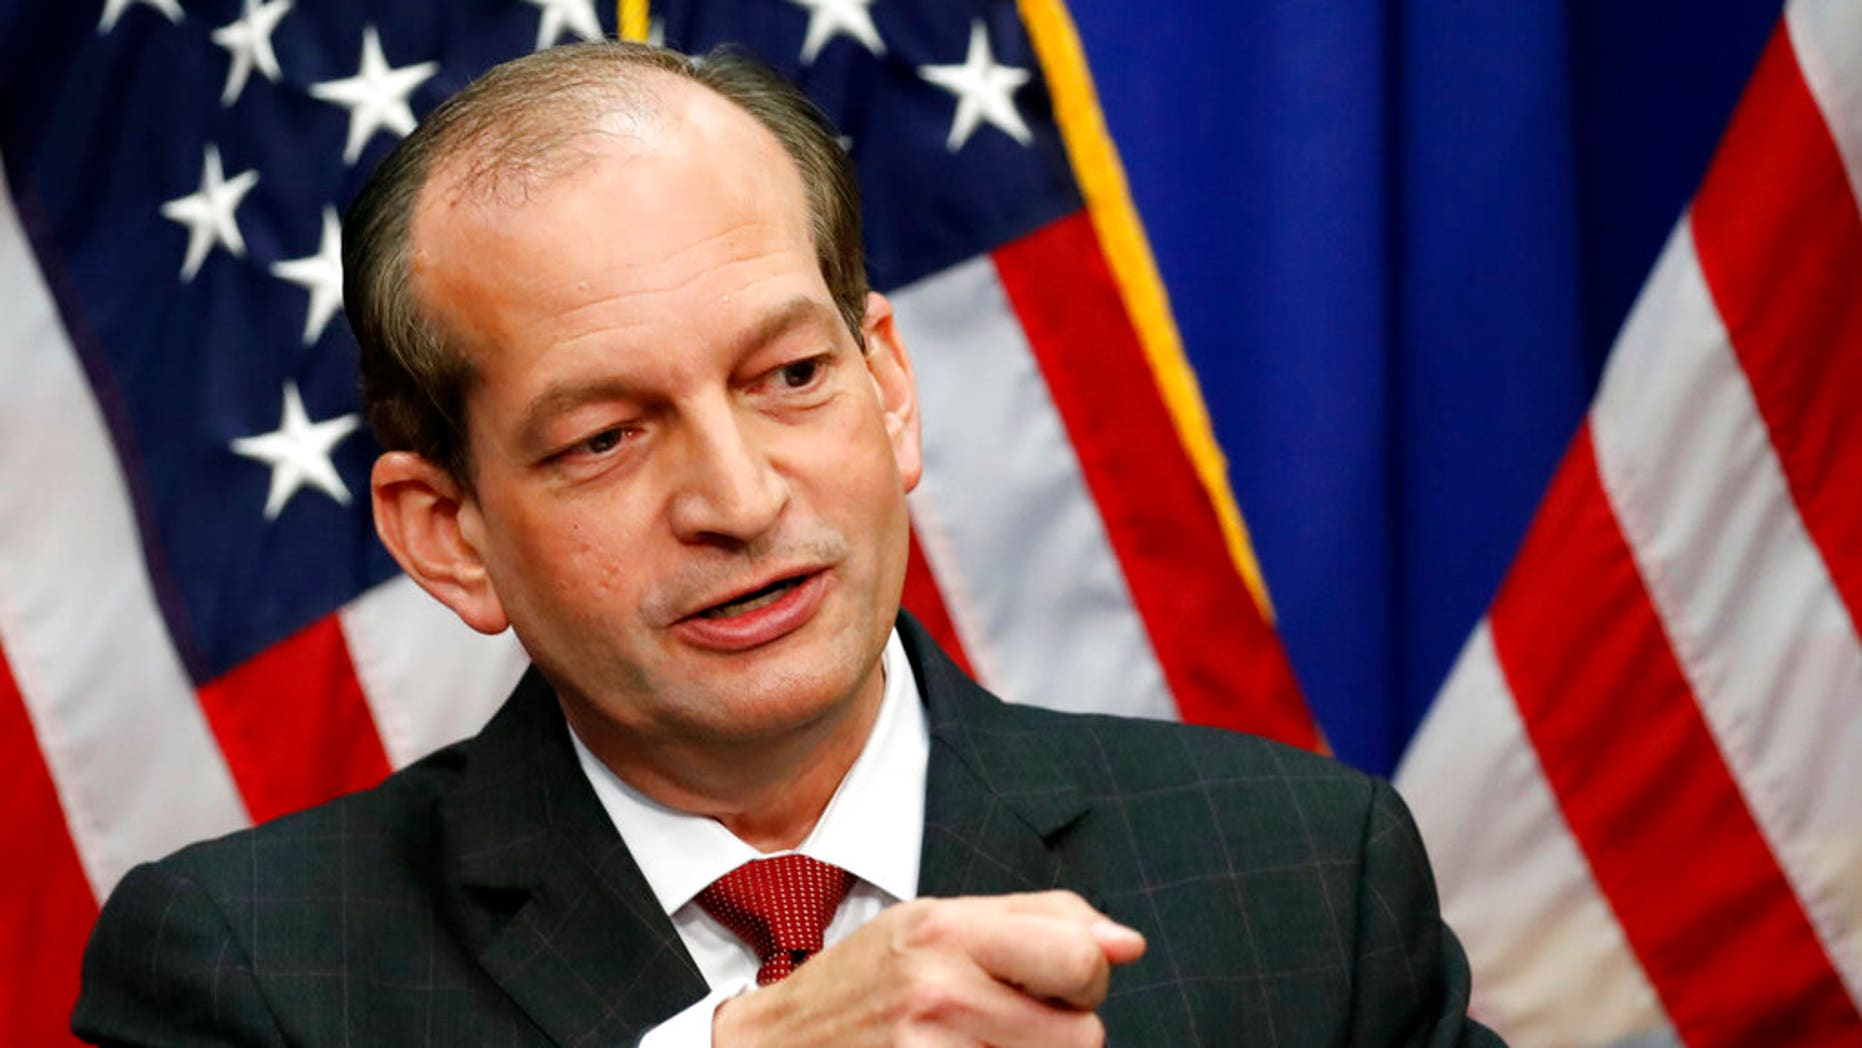 Westlake Legal Group AcostaAP071119 Labor secretary facing Capitol Hill hot seat over Epstein deal; Possible break in missing Kentucky mom case fox-news/columns/fox-news-first fox news fnc/us fnc article 308e97b6-1211-5ea2-a67a-9b61d4569755